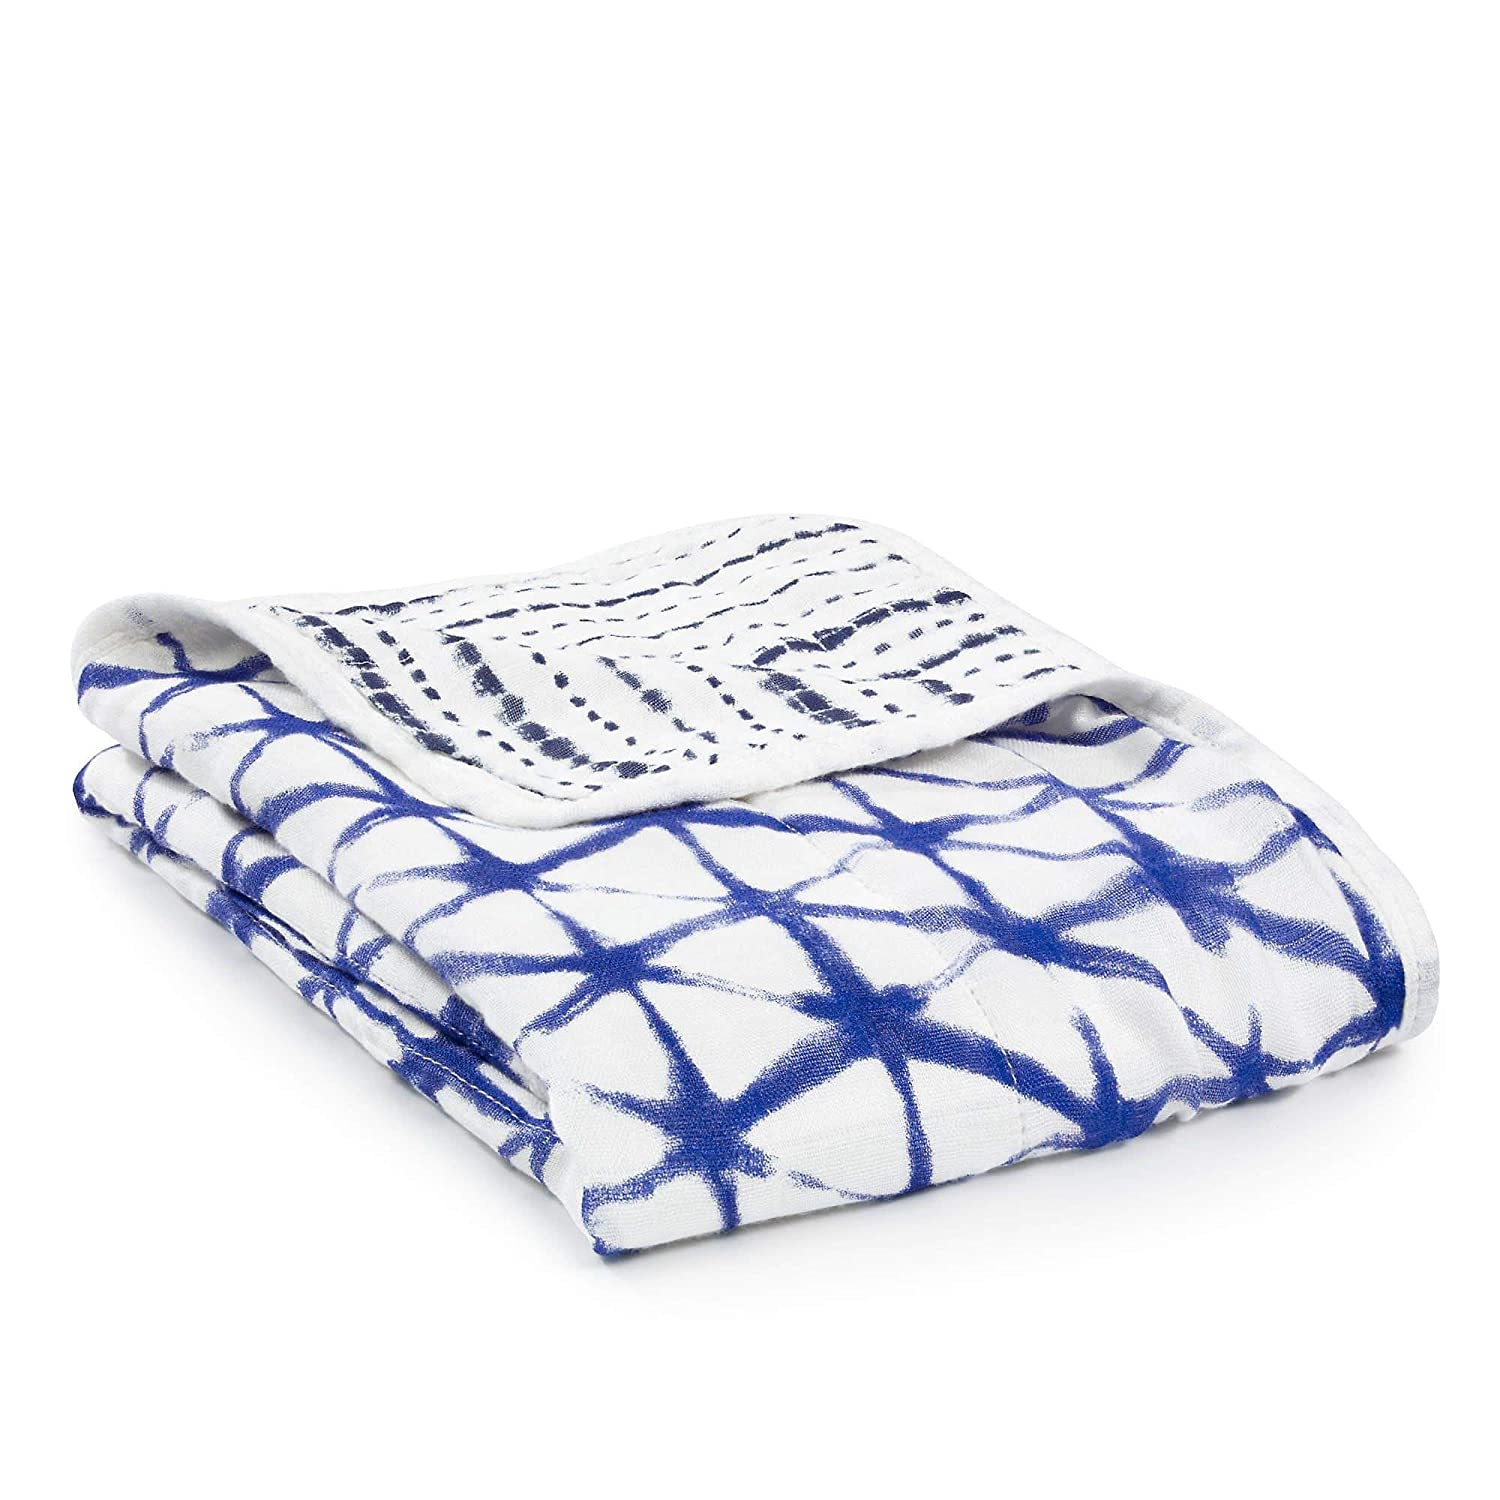 aden + anais silky soft swaddle, 100% viscose made from bamboo, 120cm X 120cm, azure beads 8949G